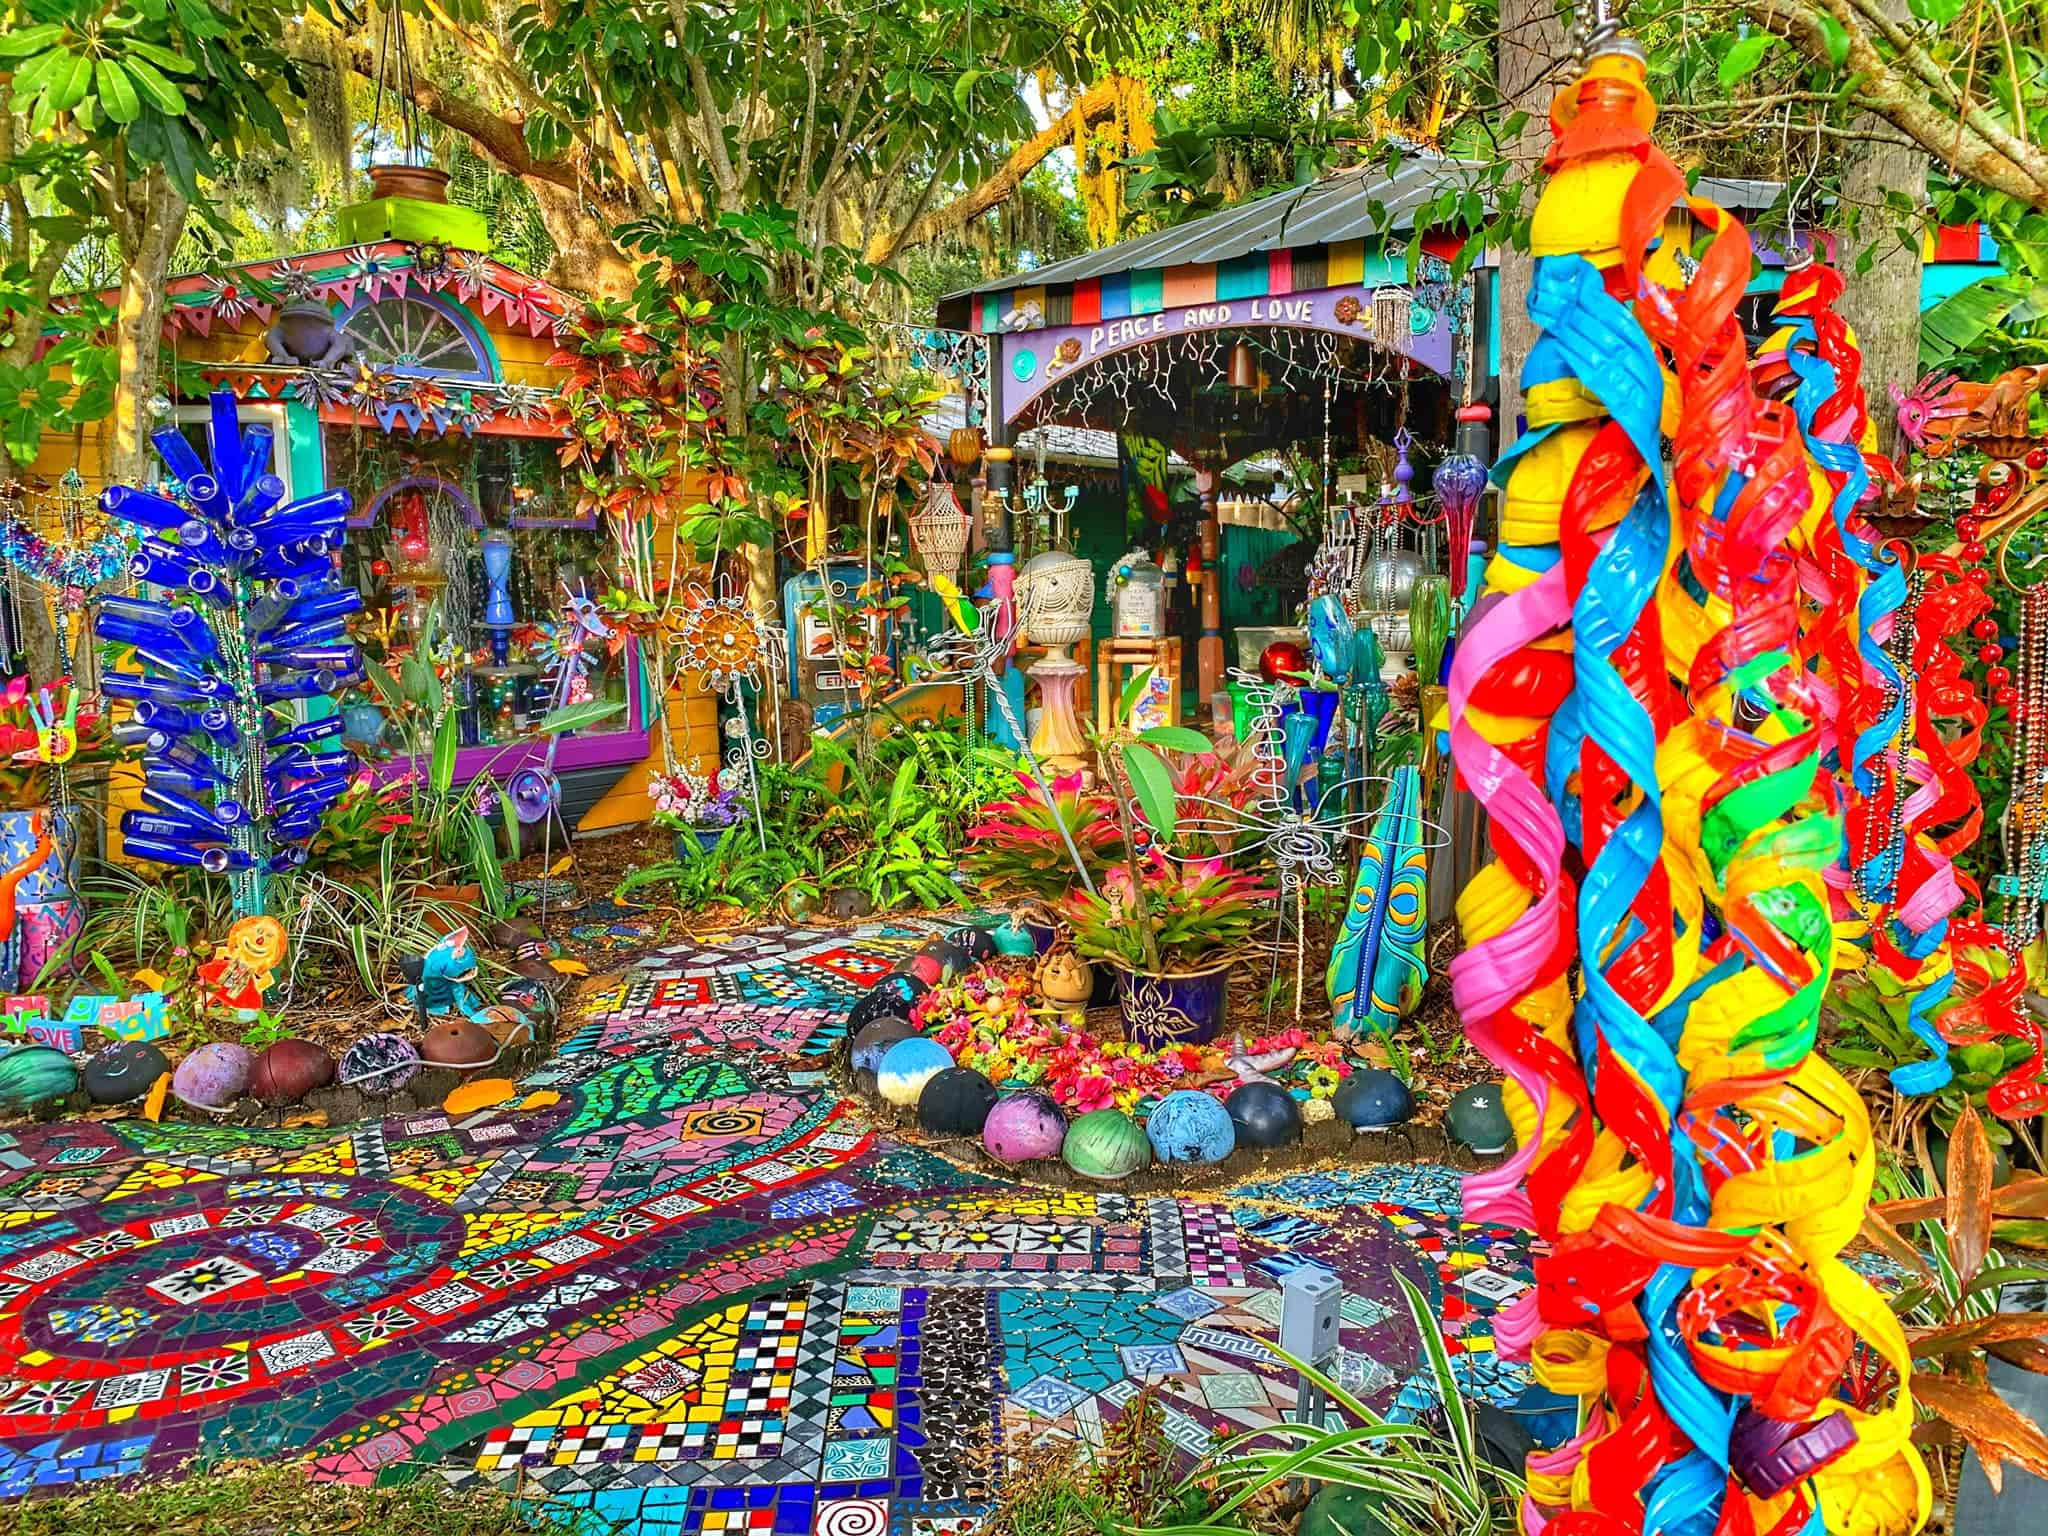 Outdoor portion of Whimzeyland. Brightly colored tiles make a swirl path, lots of ornate sculptures, bowling balls, and other piece hang from trees and are covering the ground